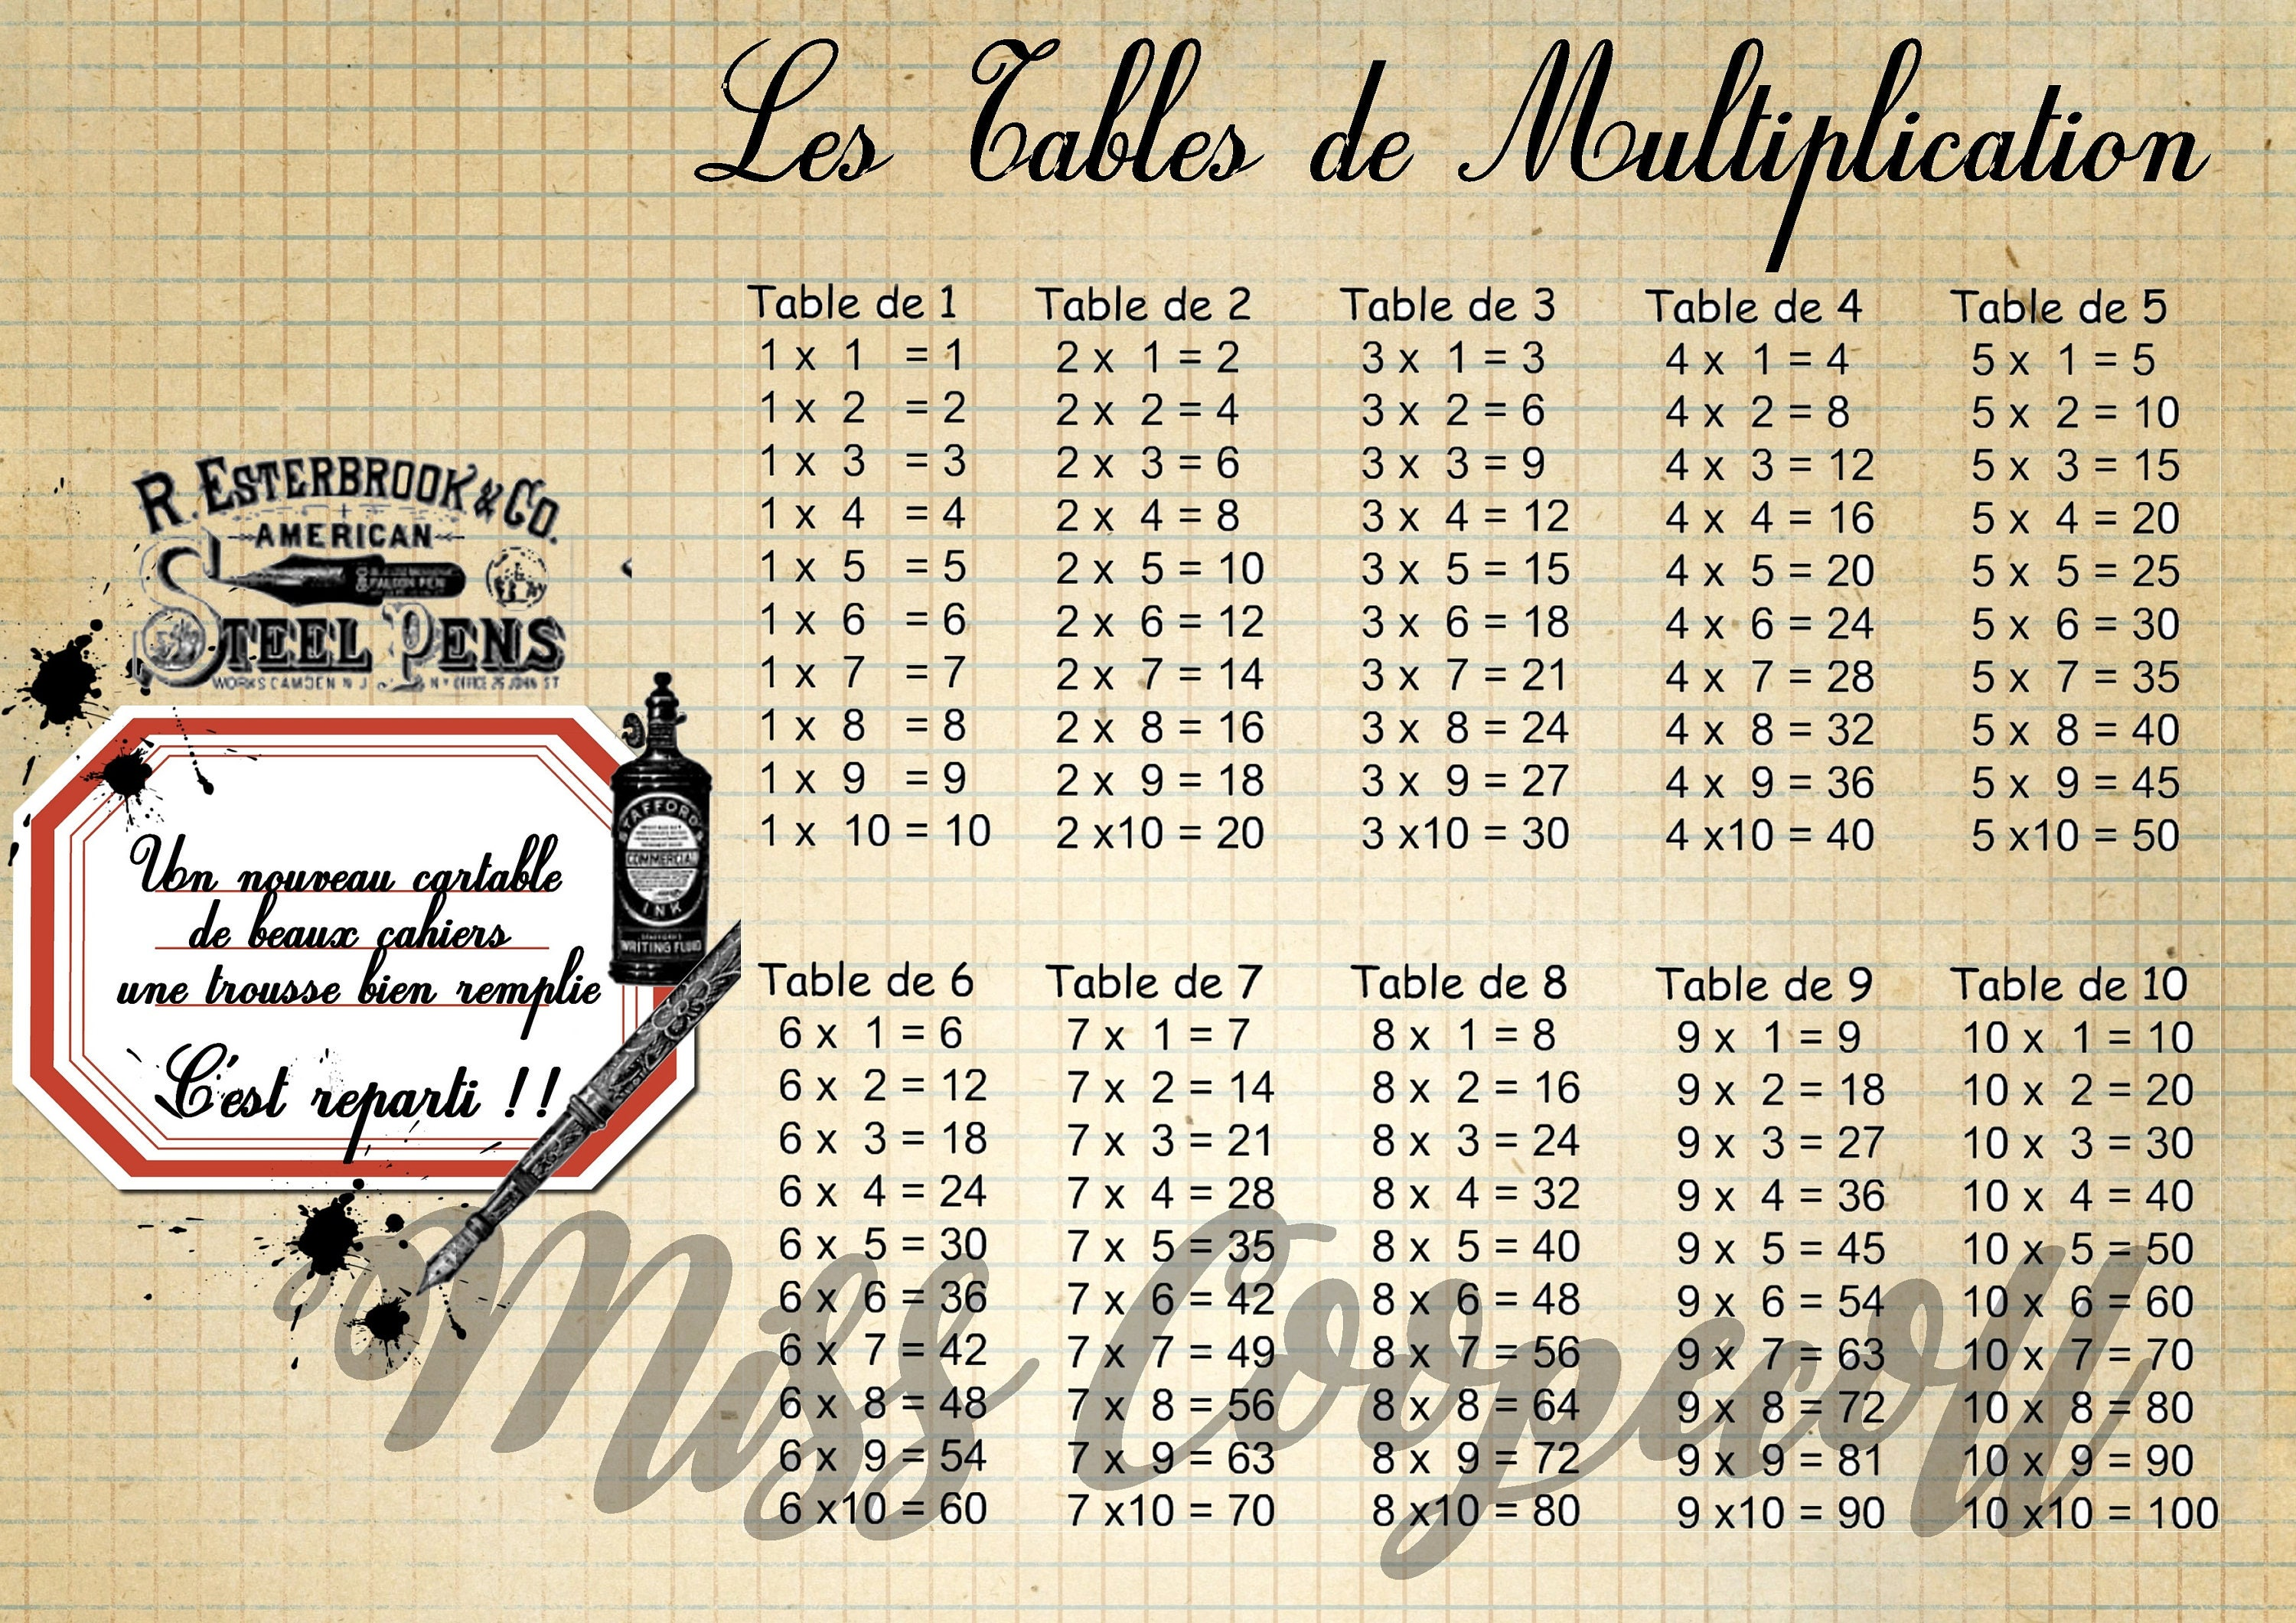 Table de multiplication imprimer format a4 c 39 est la - Table de multiplication a imprimer ...